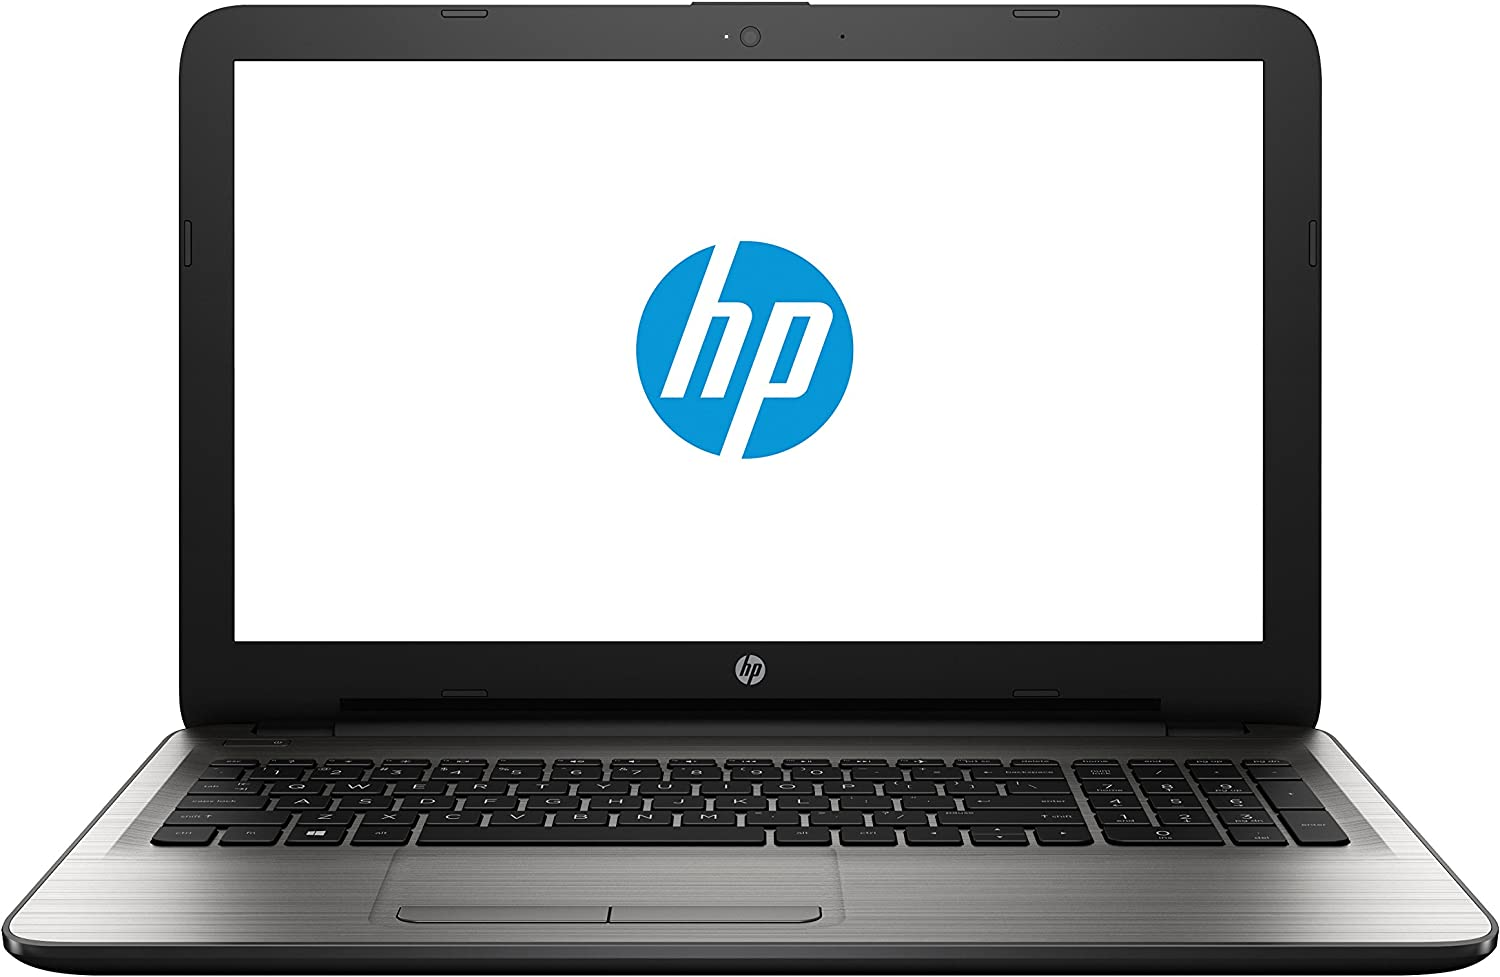 HP 15-ay196nr 15.6-Inch HD SVA WLED-backlit touch screen Laptop (Intel Core i7-7500U 2.7 GHz, 8 GB DDR4 RAM, 1 TB 5400 rpm SATA HDD, Windows 10 Home 64), Silver